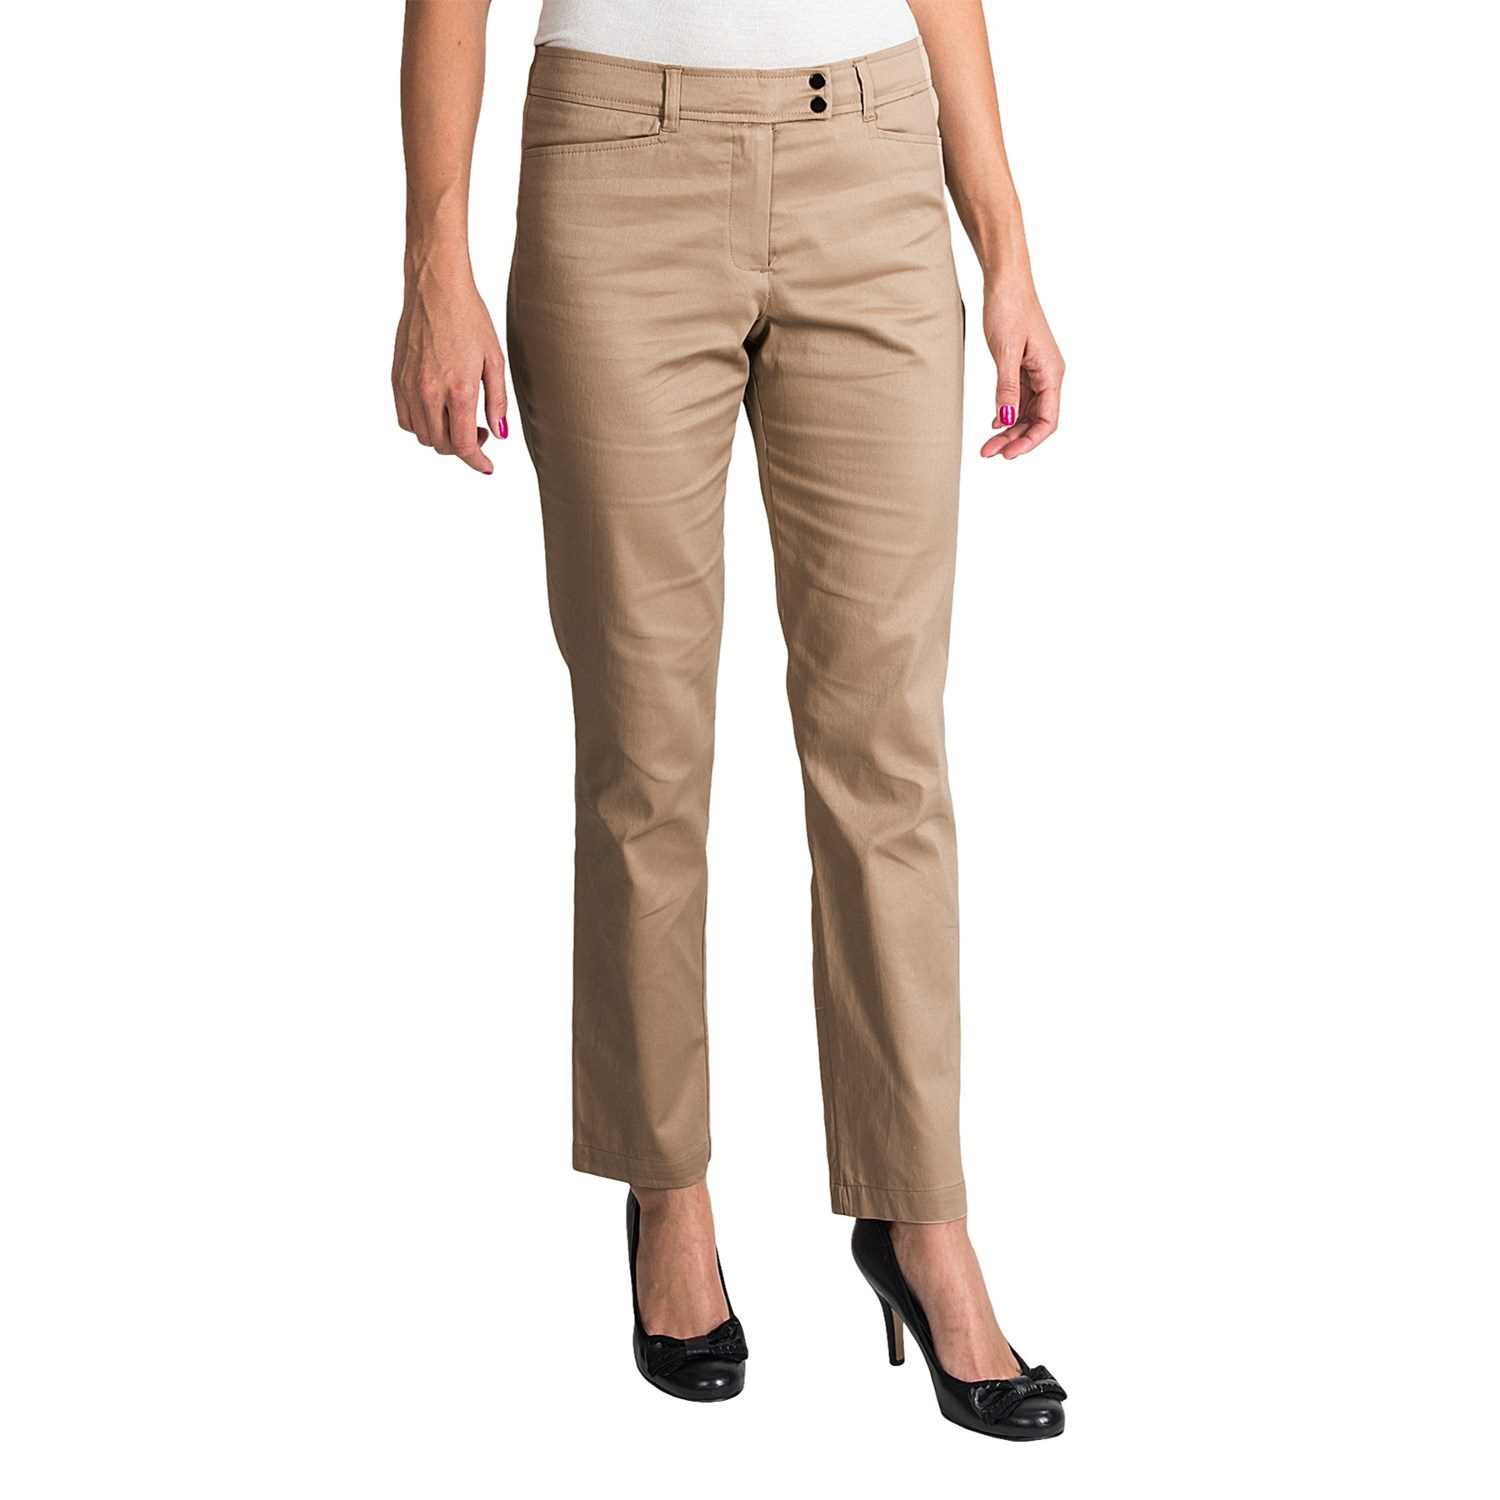 Find great deals on eBay for sateen pant. Shop with confidence.